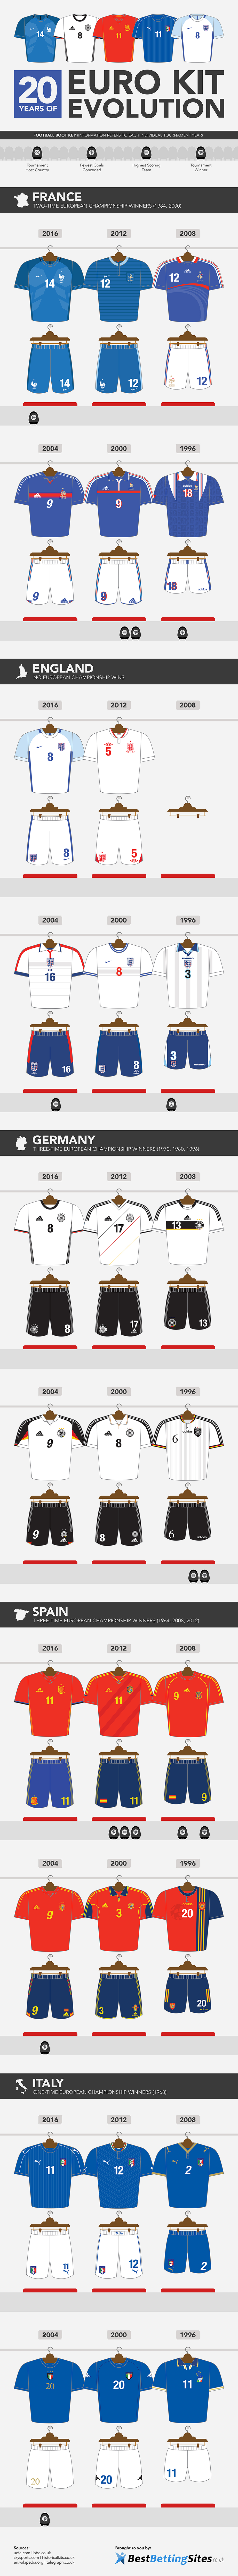 20 Years of Euro Kit Evolution.png